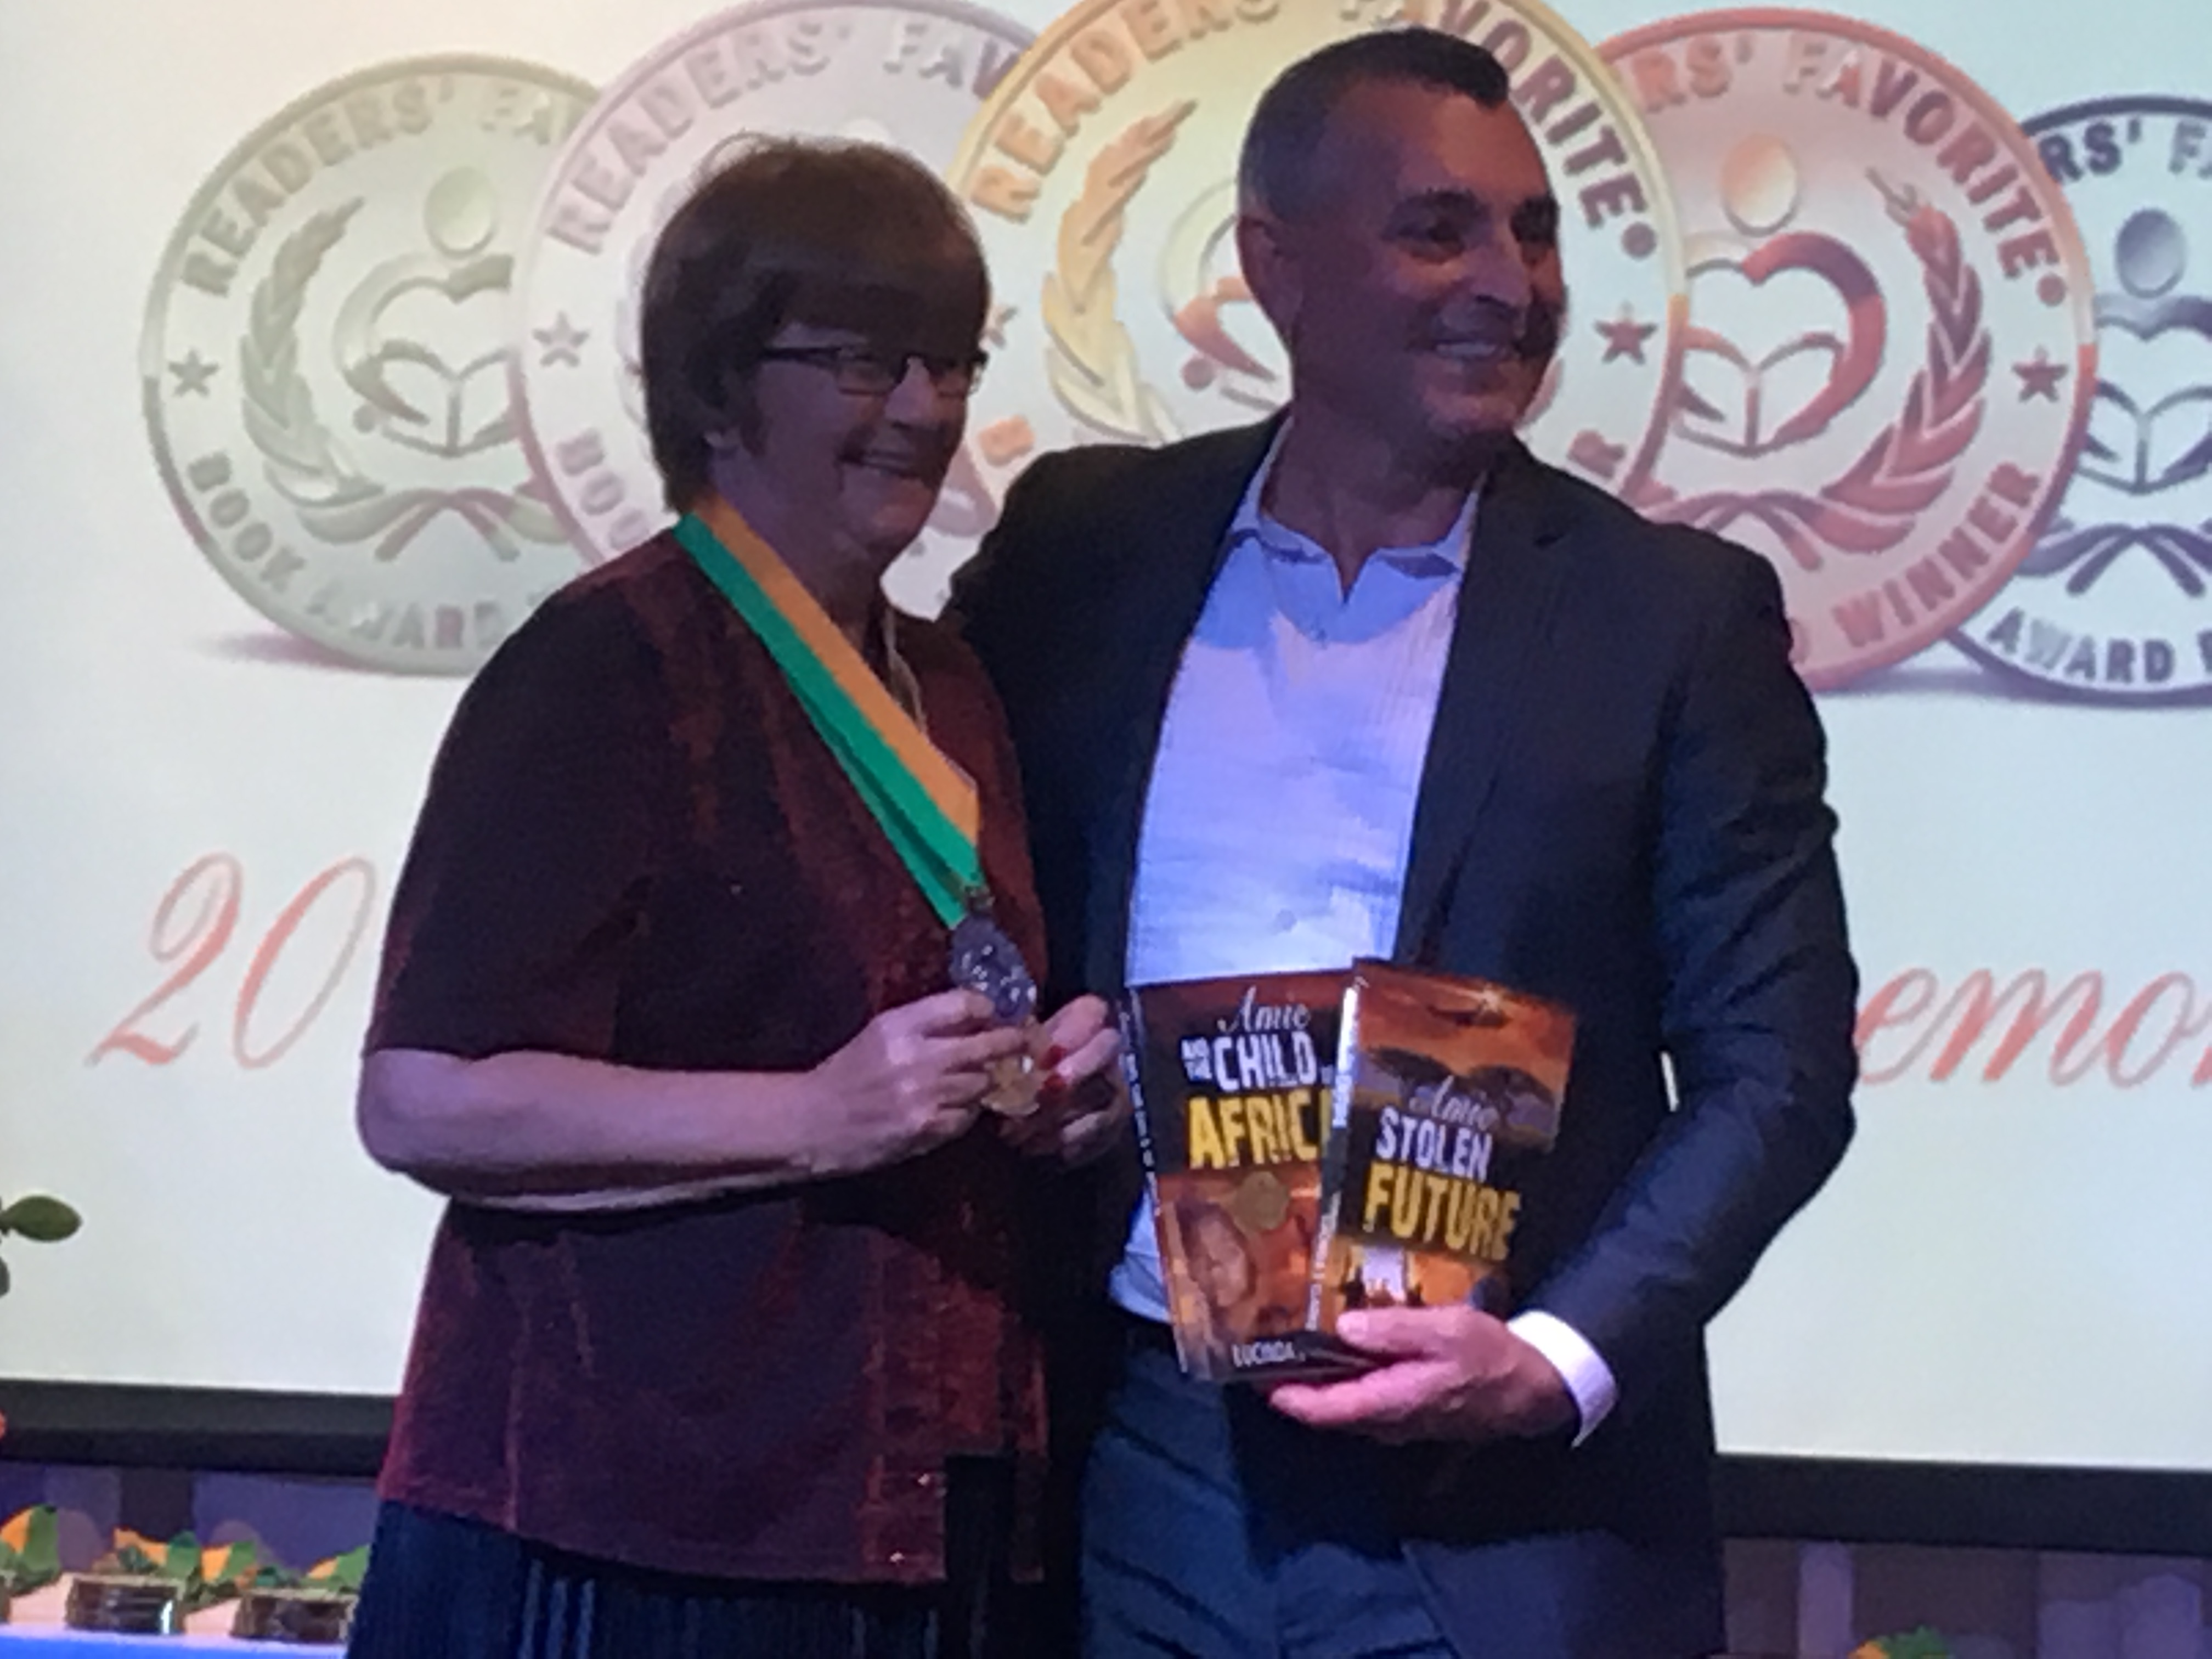 Image shows Lucinda with her medals and the award winning books